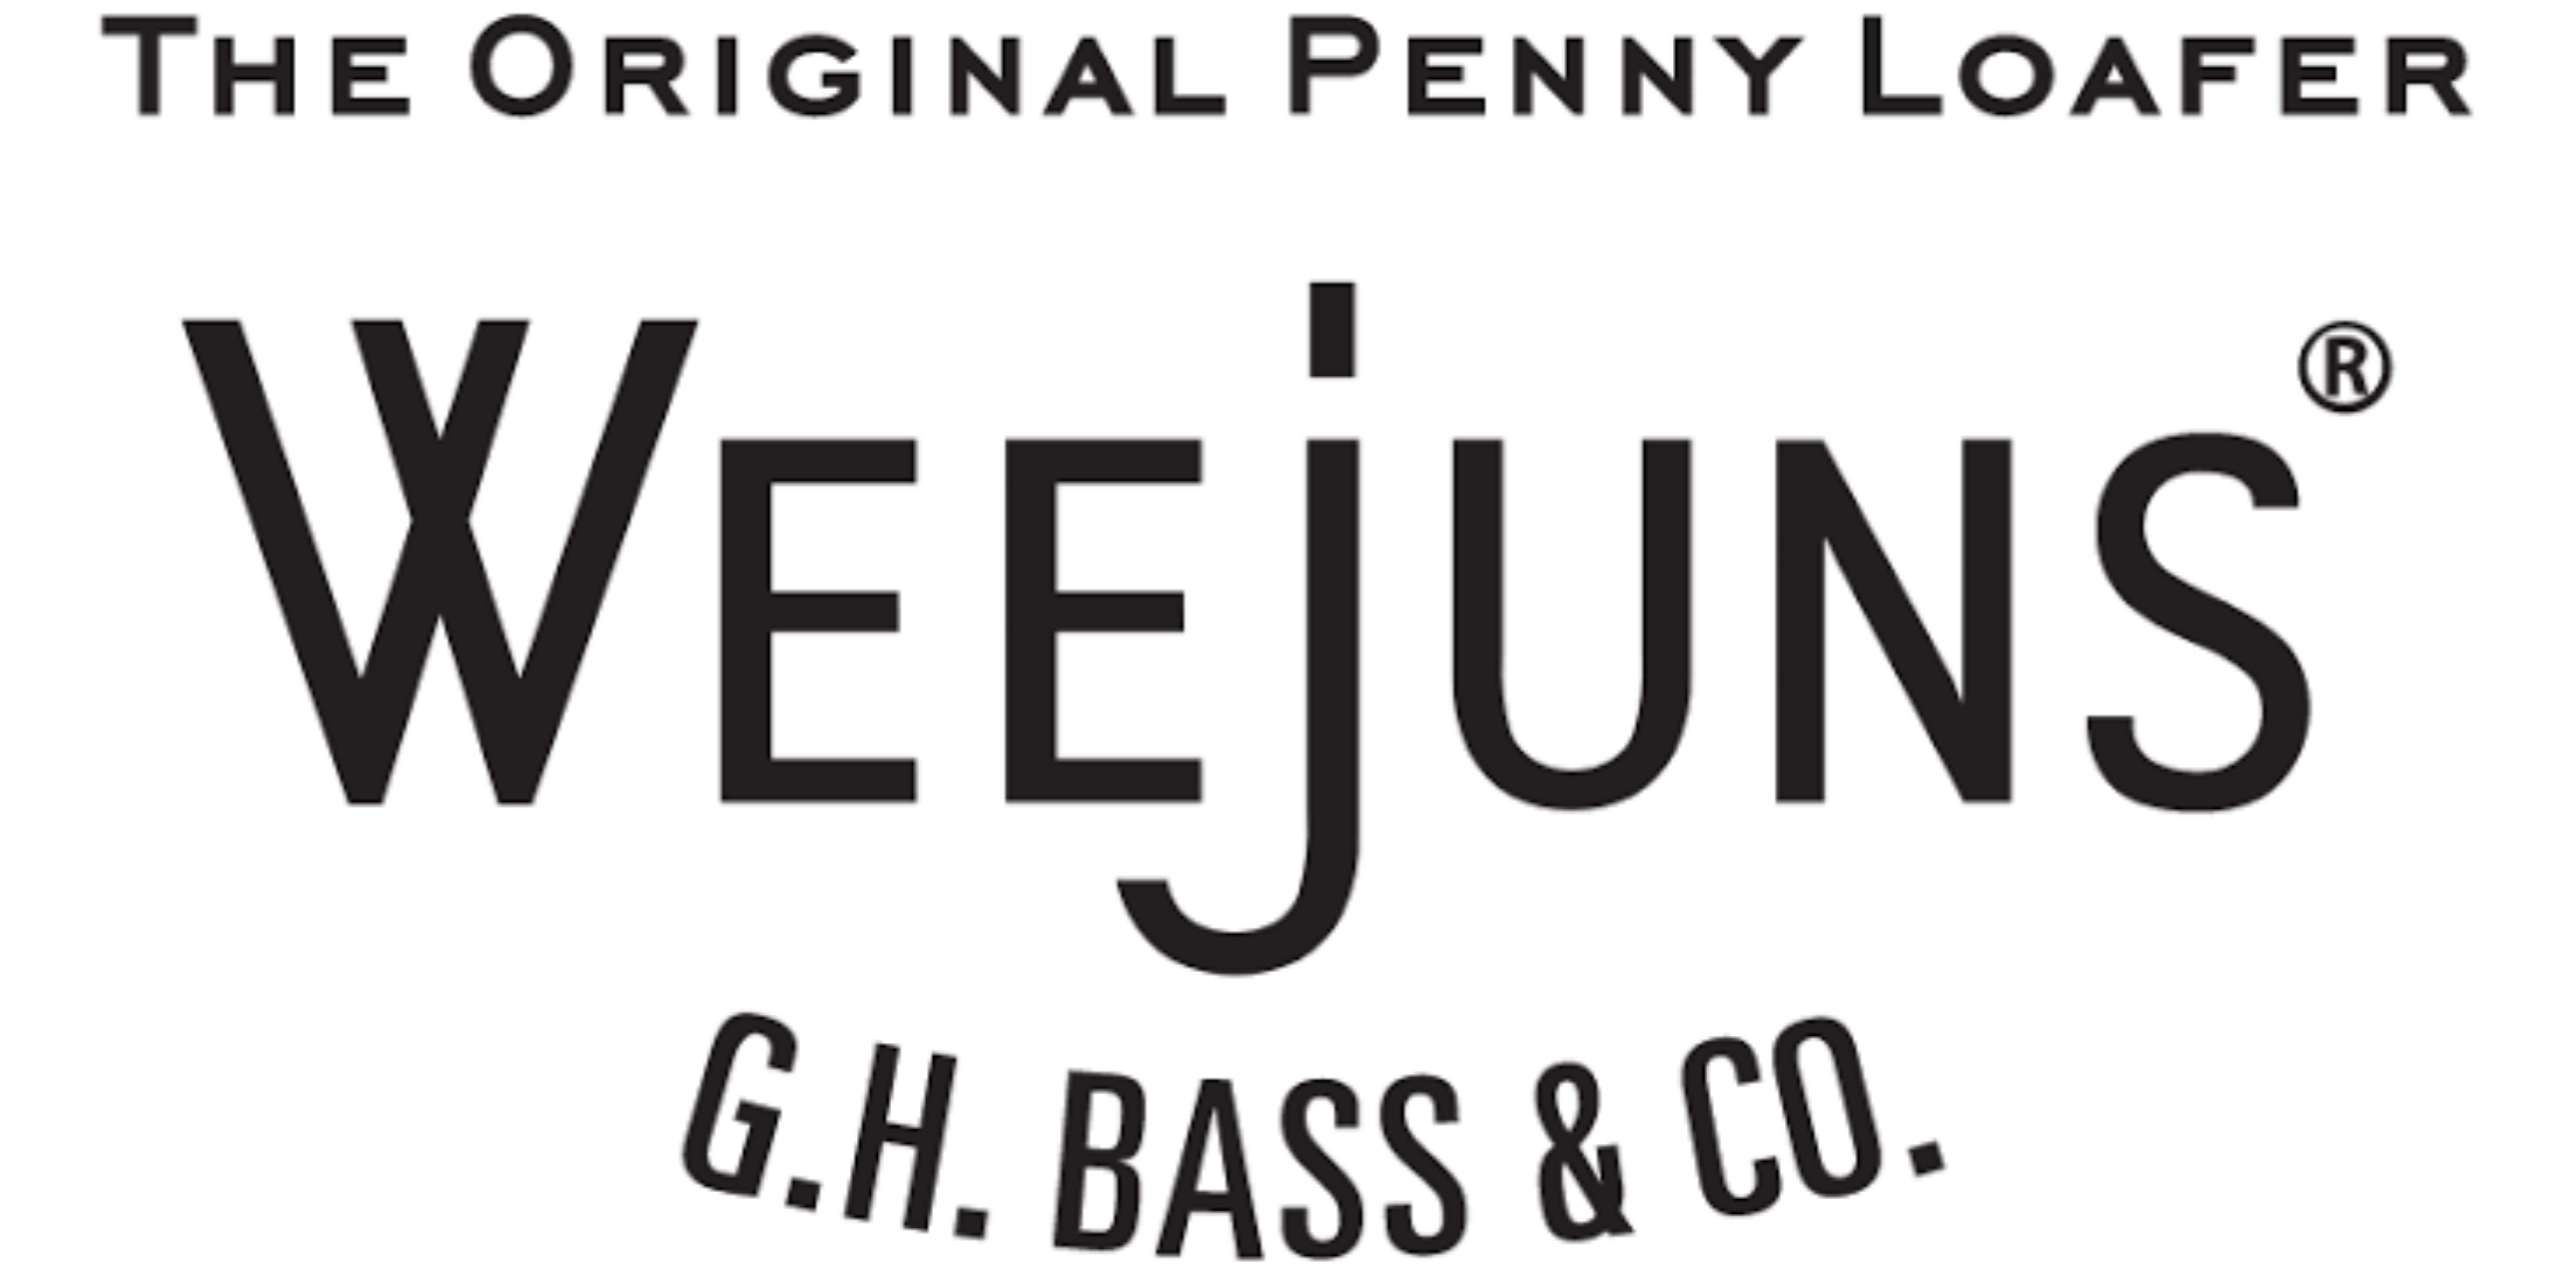 History of Weejun penny loafers